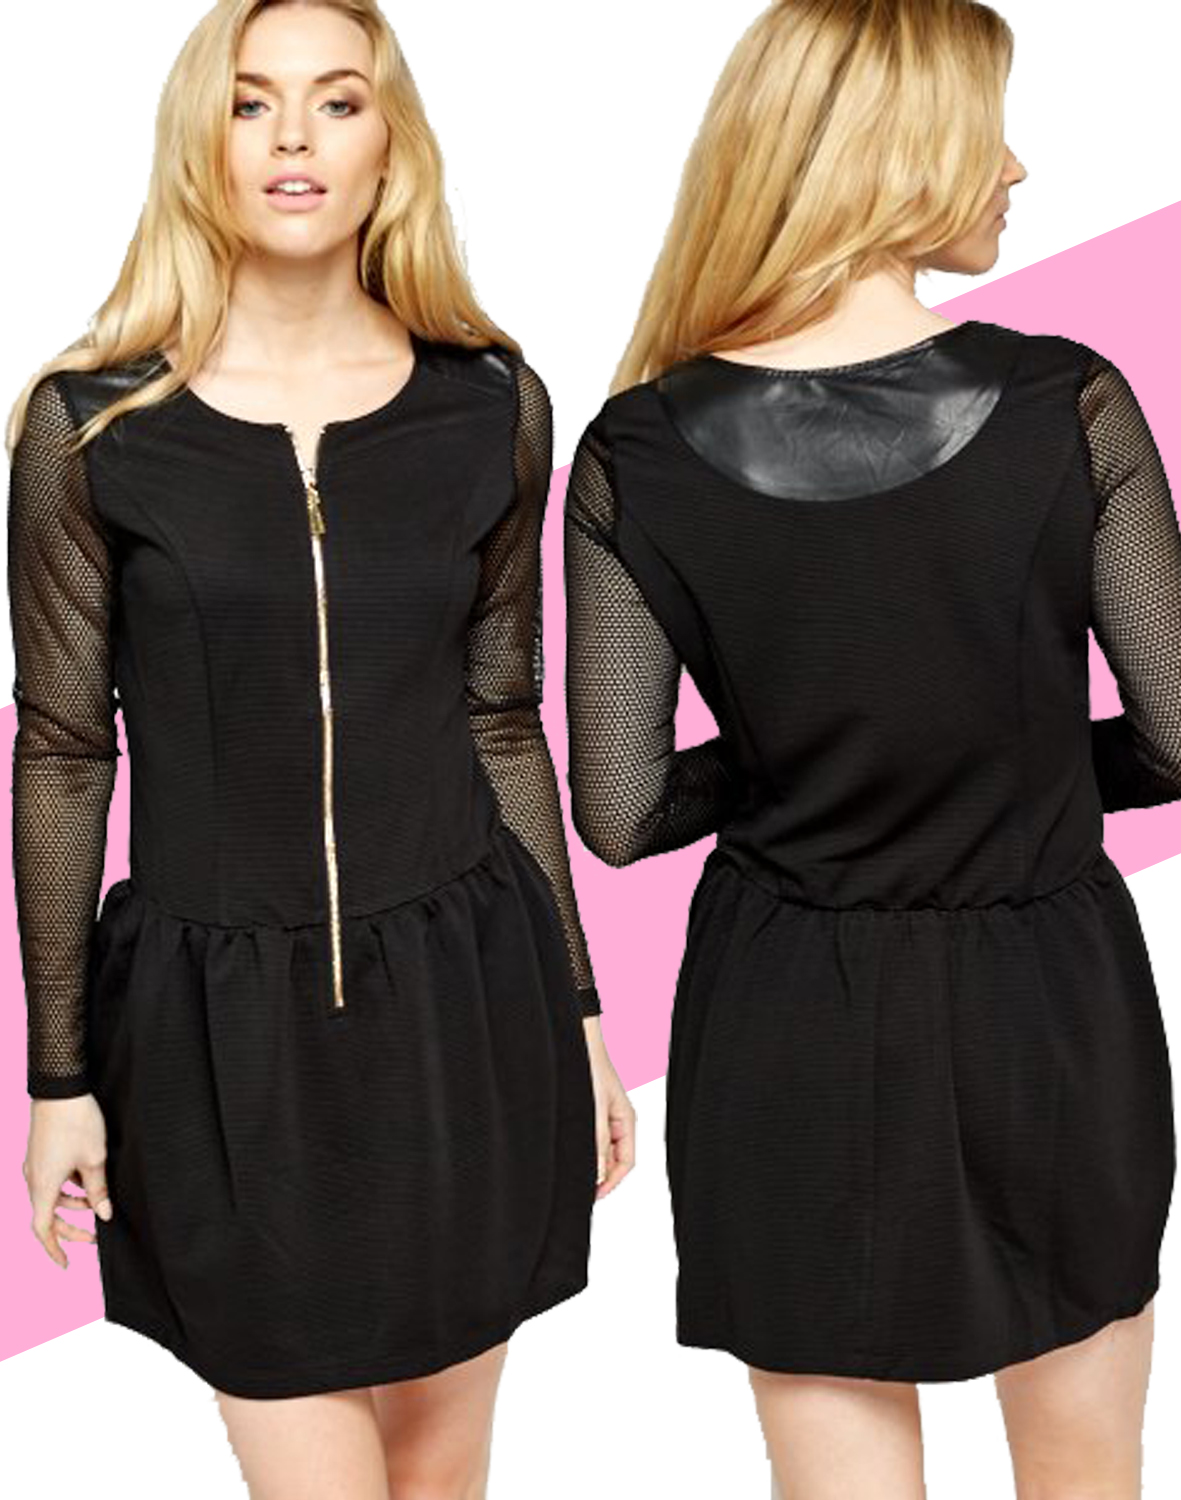 e8b416f348304 Perforated Sleeve Black Skater Dress S,M,L ♡ FREE Worldwide Shipping ♡